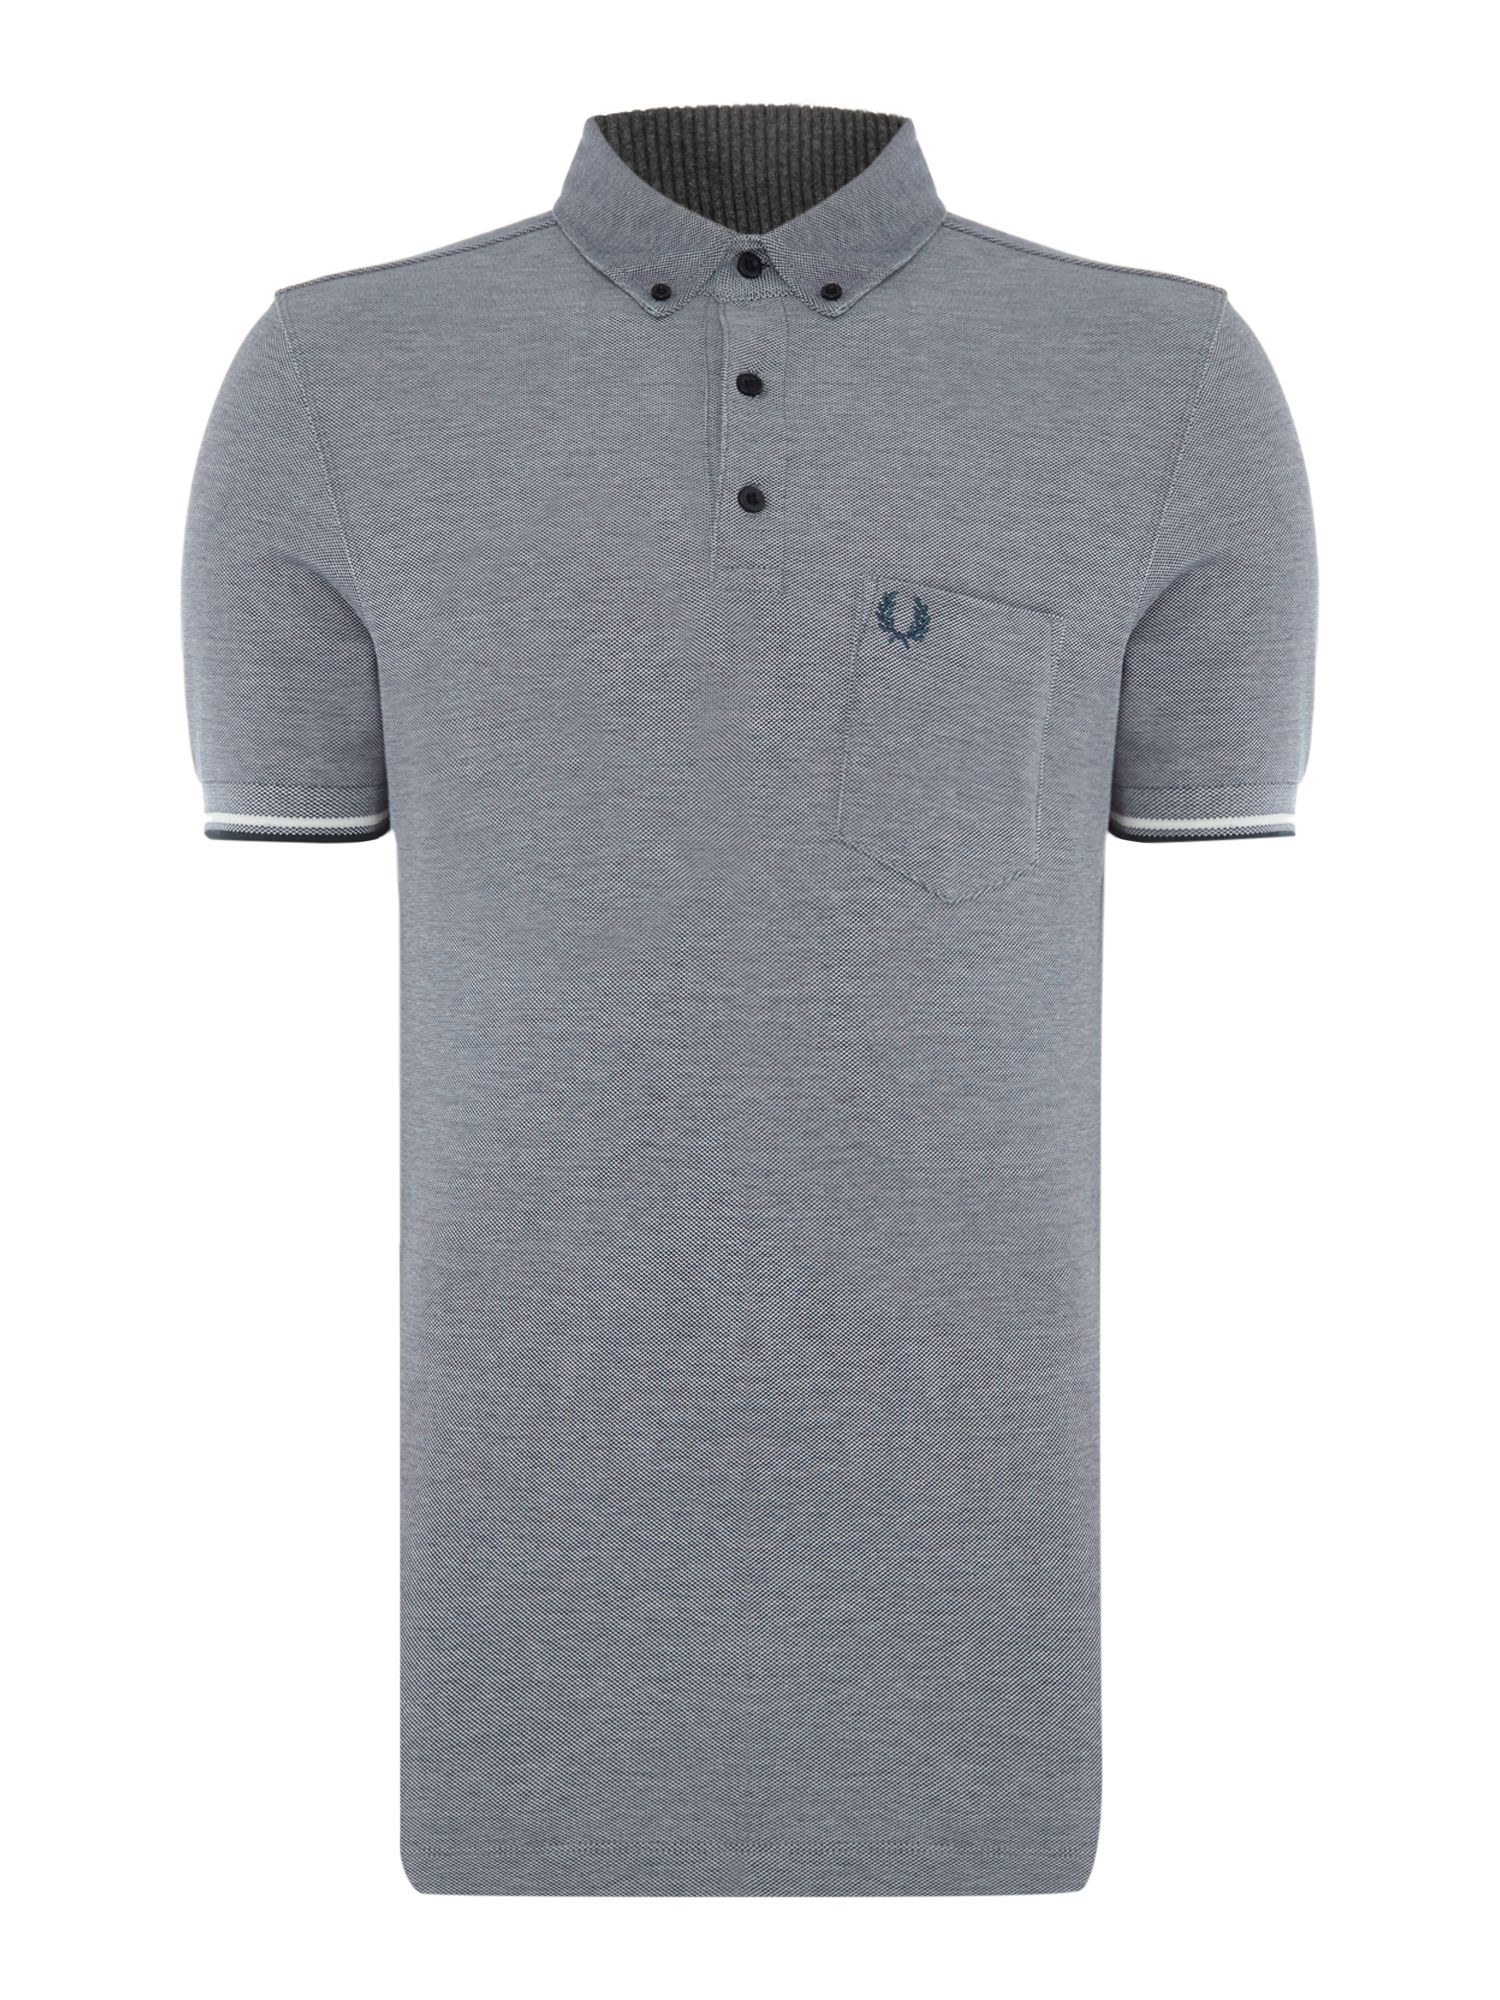 Men's Fred Perry Oxford short sleeve pique polo, Dark Blue